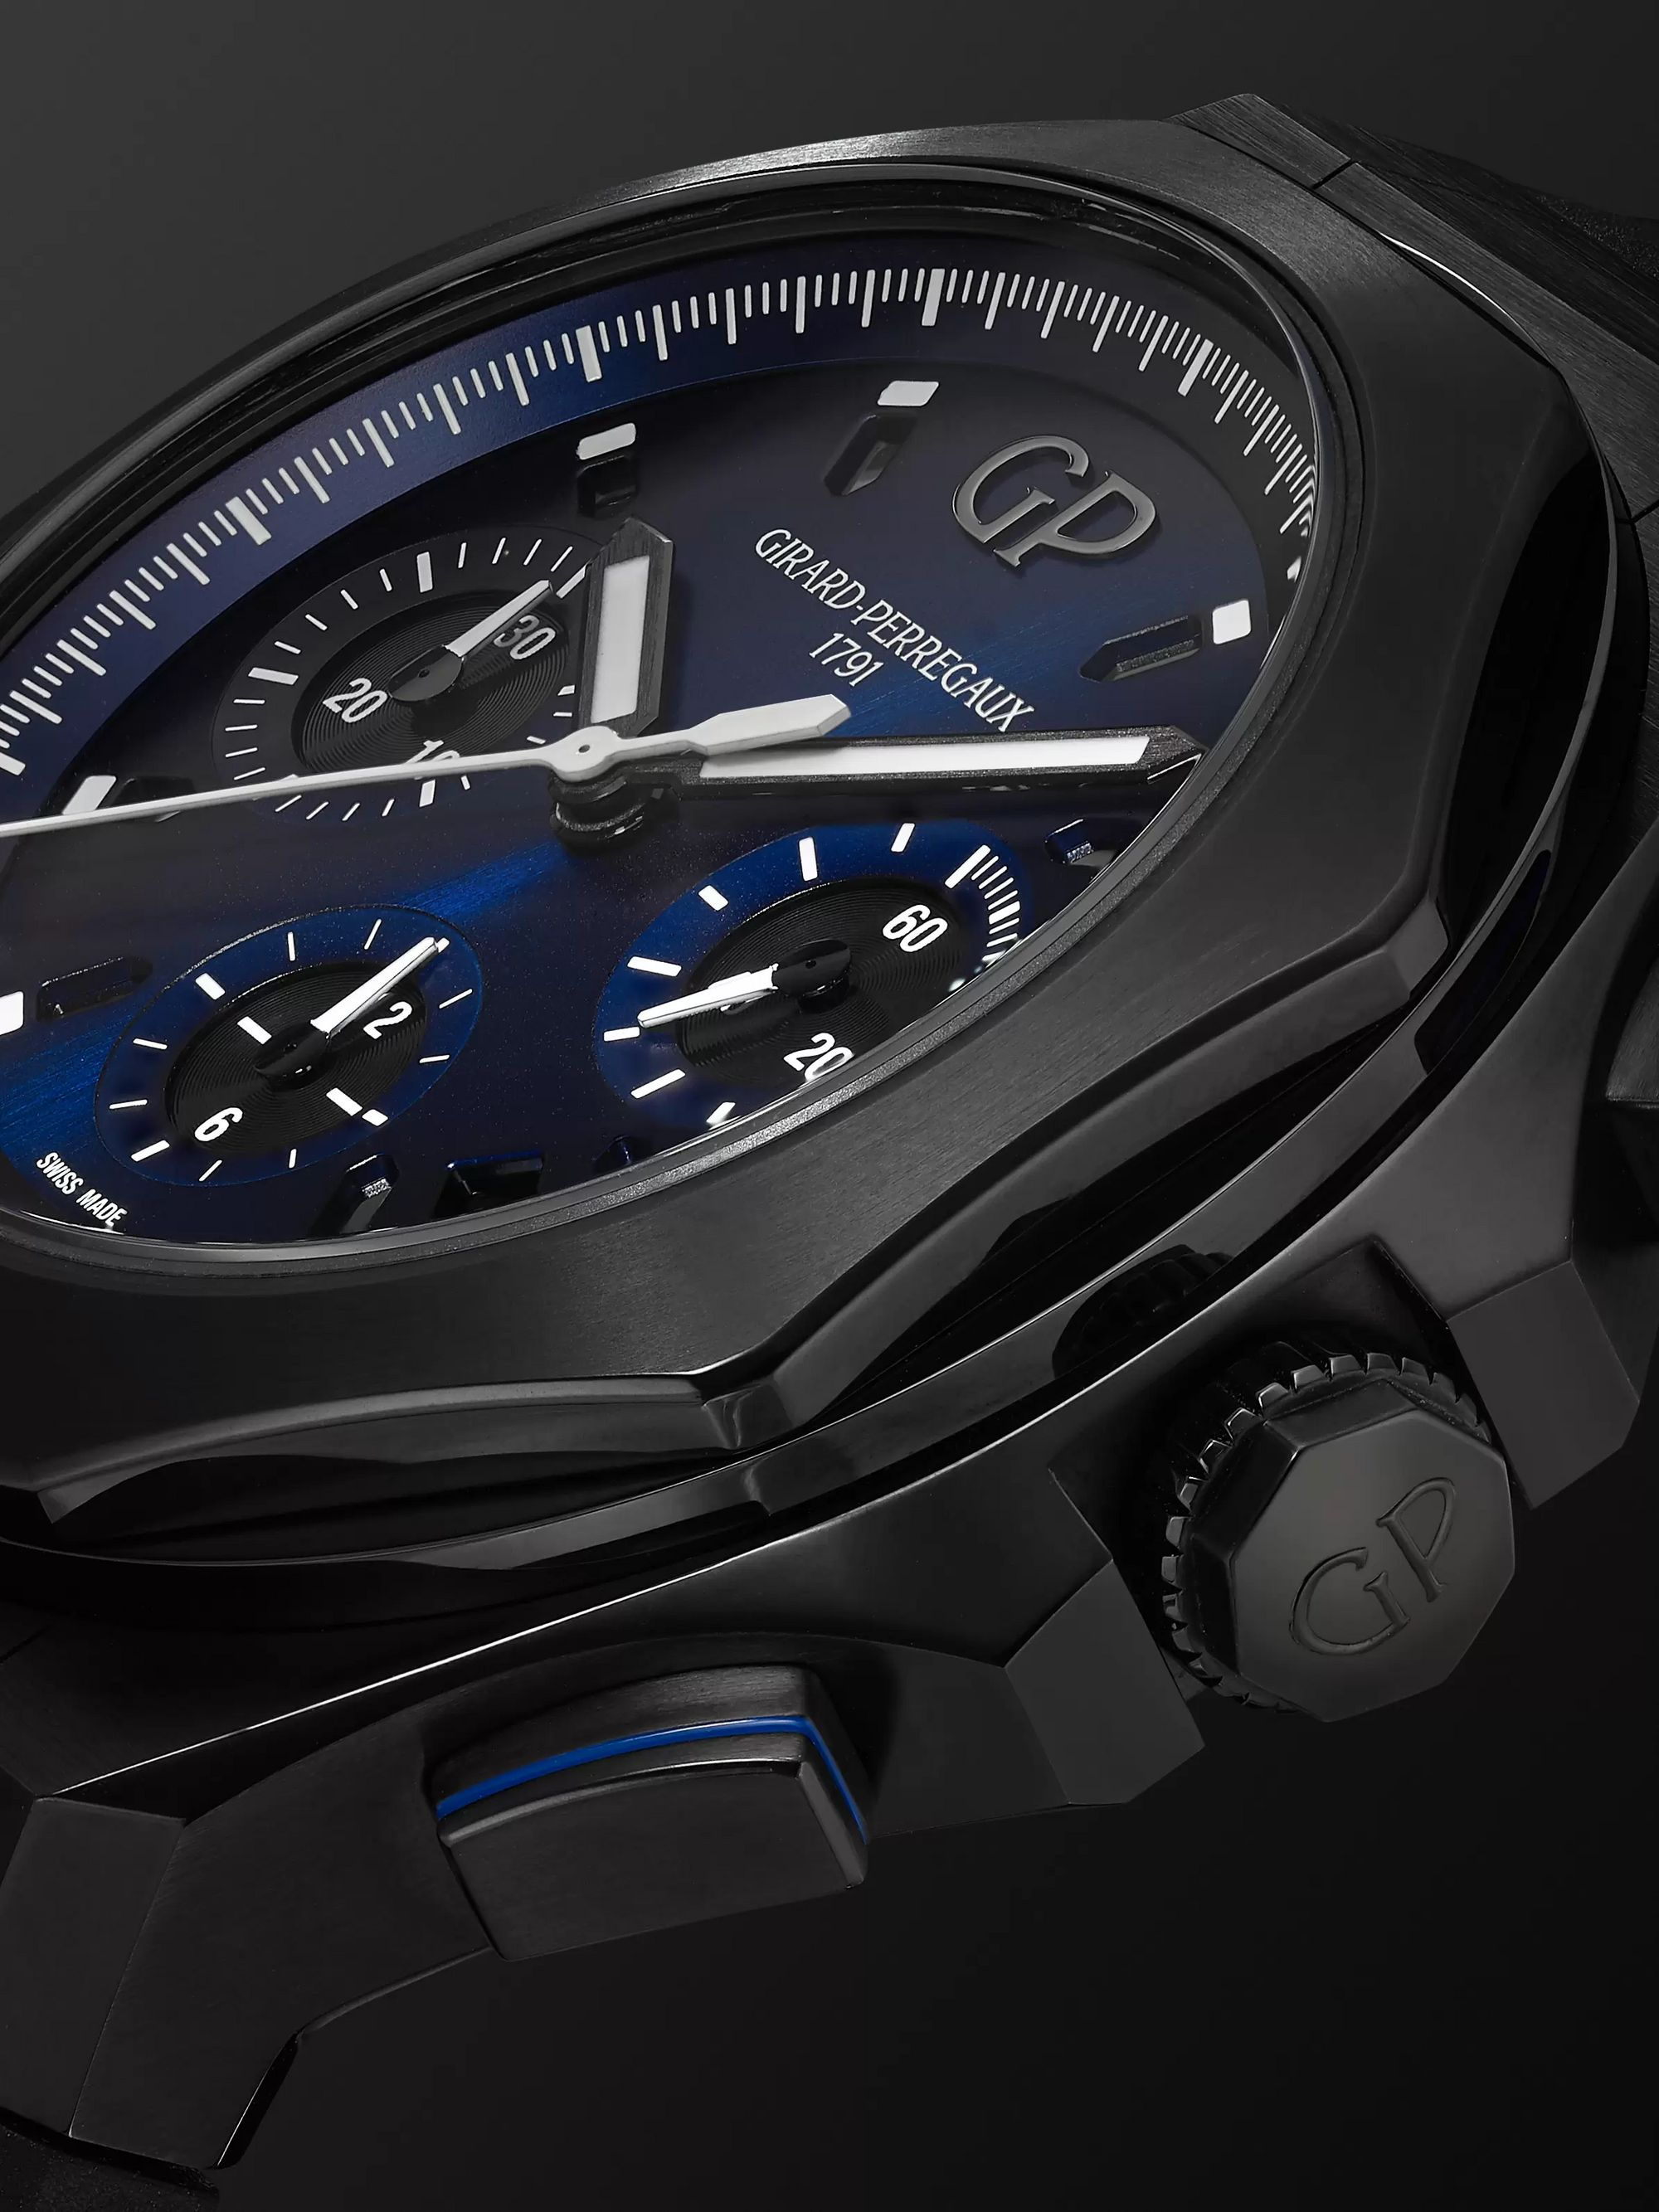 Girard-Perregaux Laureato Absolute Automatic Chronograph 44mm Titanium and Rubber Watch, Ref. No. 81060-21-491-FH6A